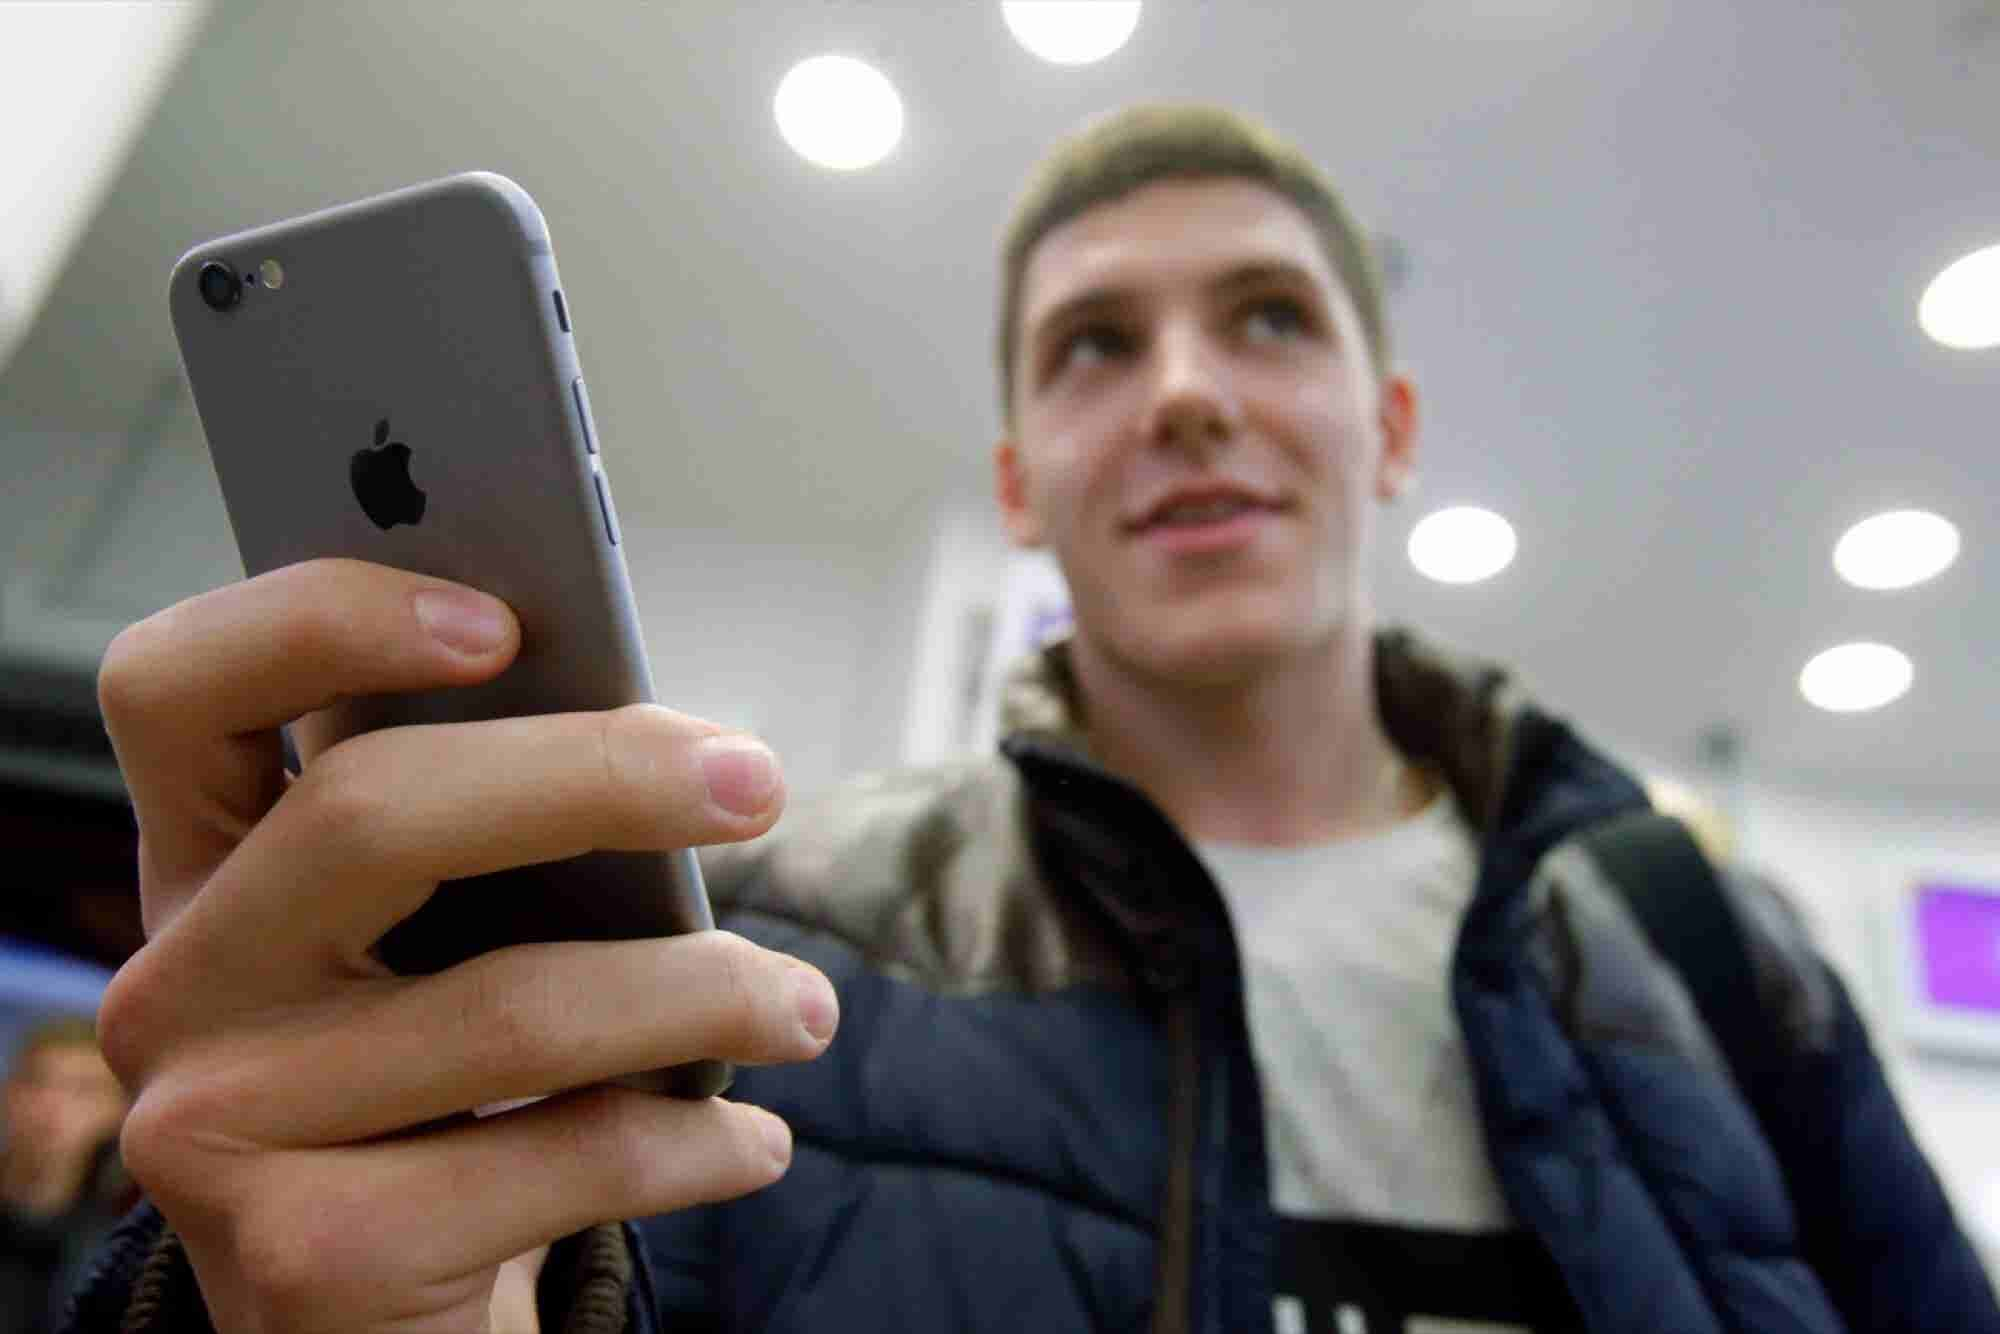 CIA Sought to Hack Apple iPhones for Nearly a Decade